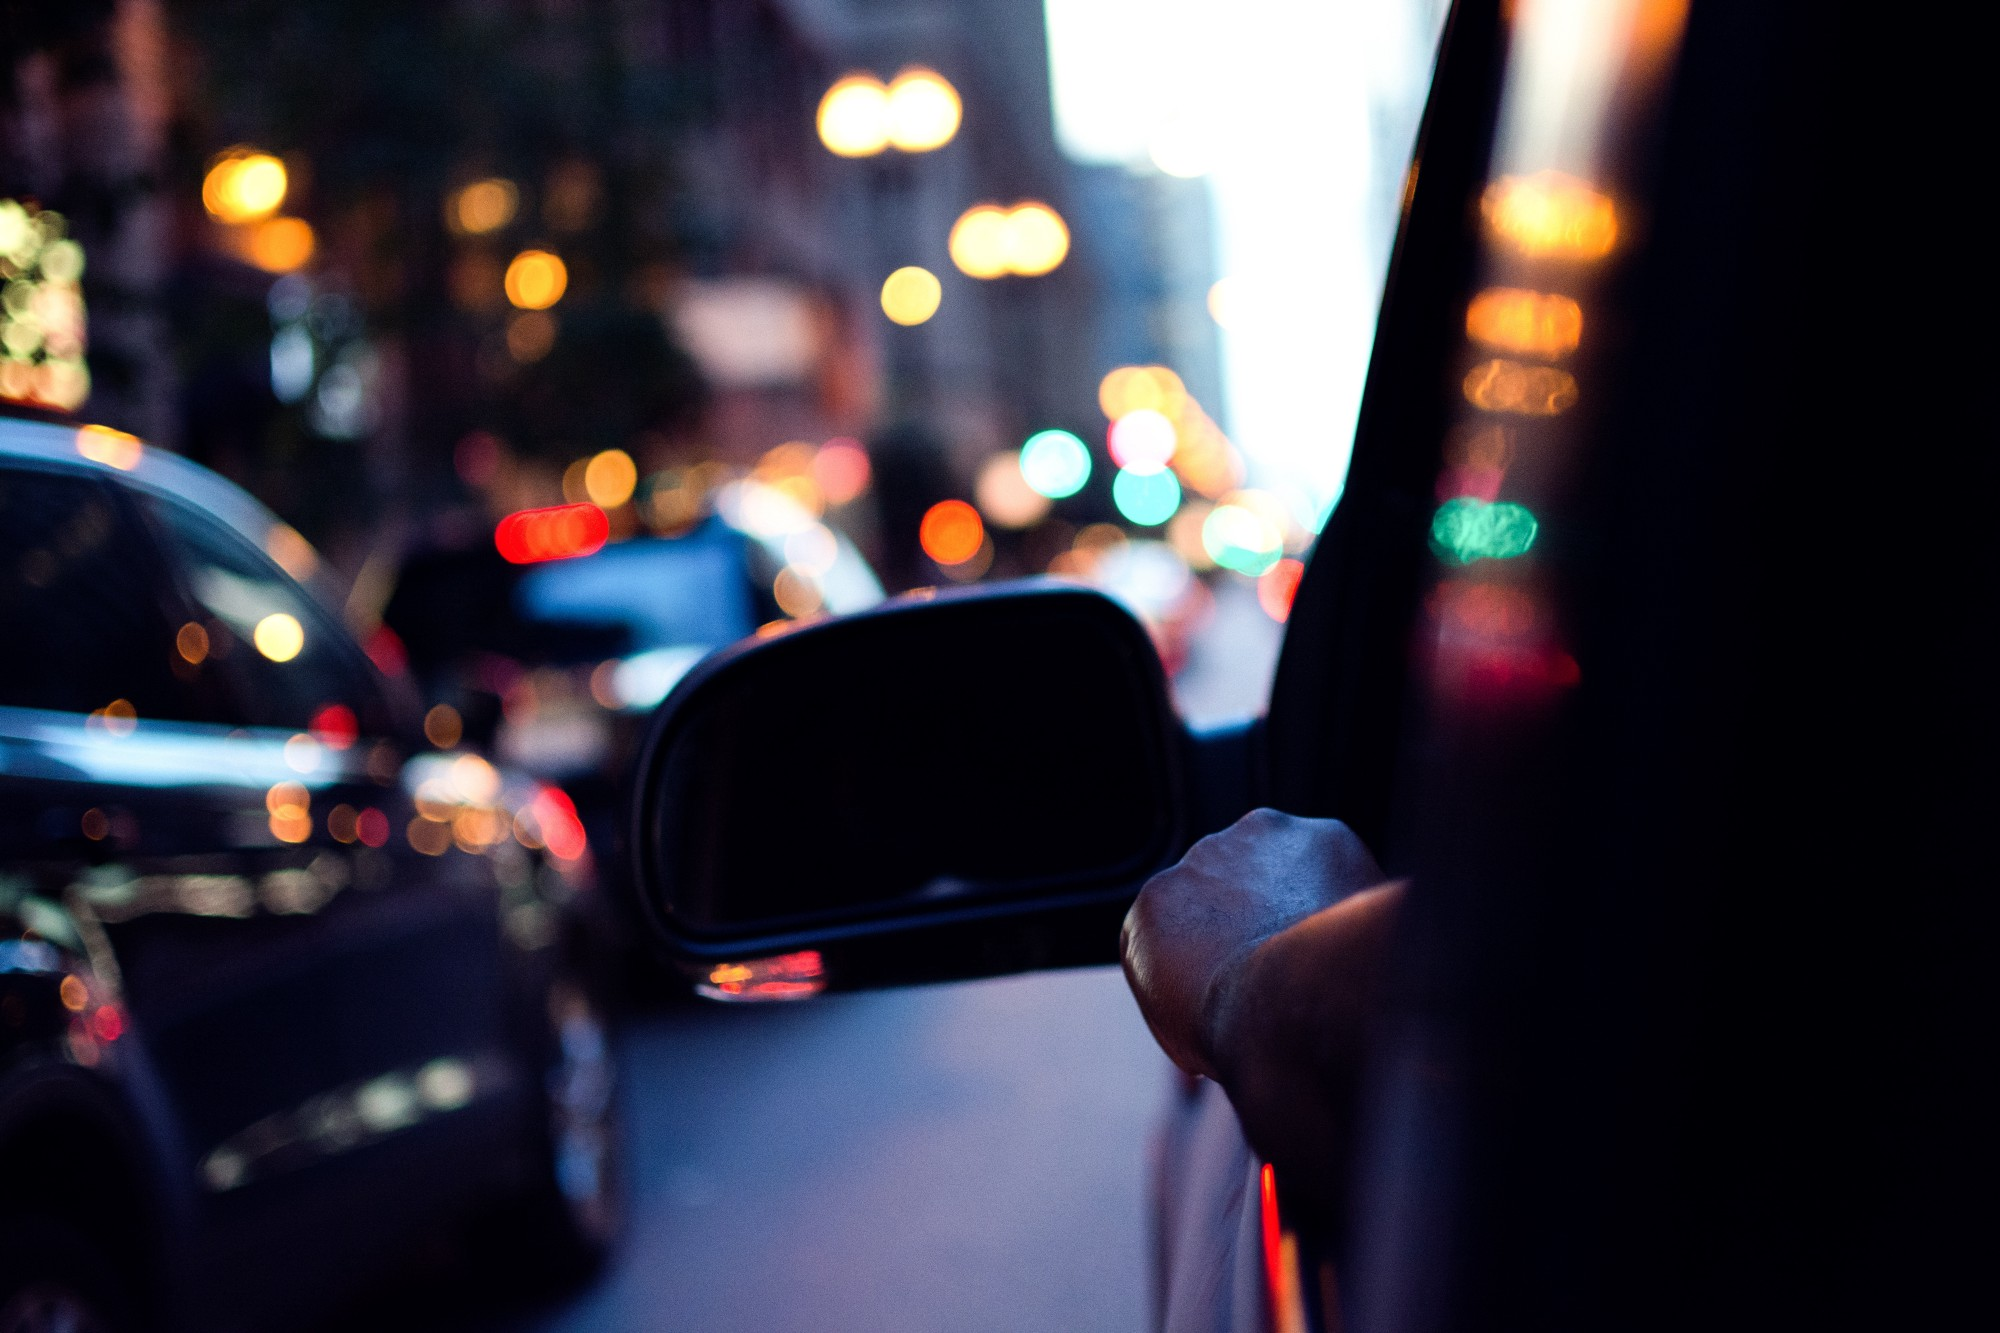 Data can give remarkable insights into driver behavior